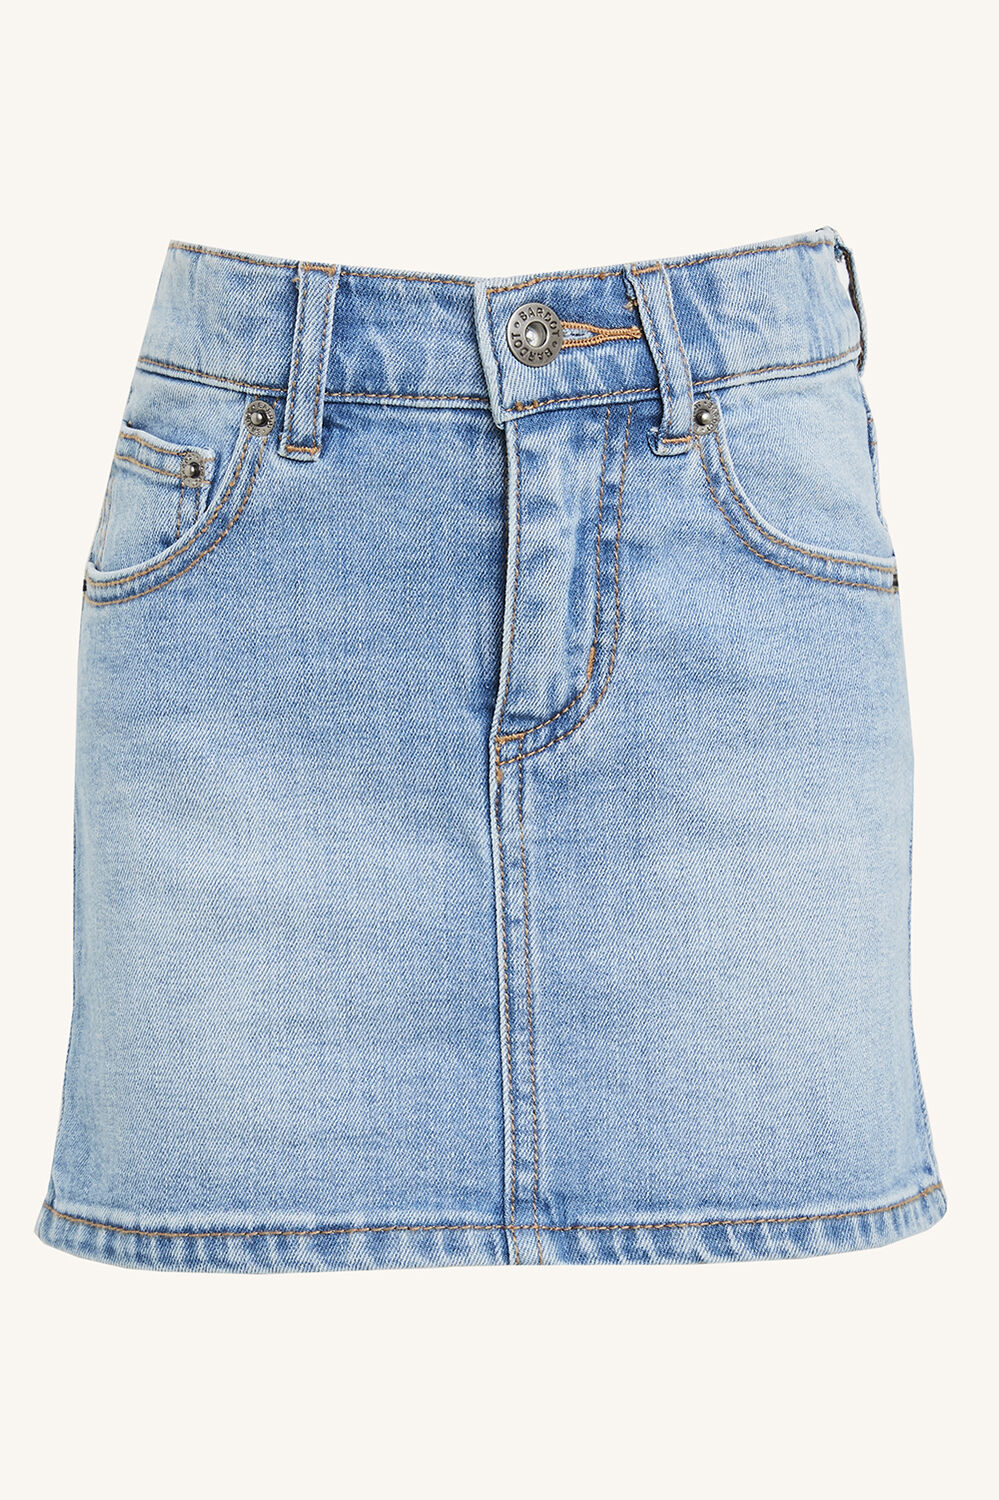 LIZA DENIM MINI SKIRT in colour TRUE NAVY